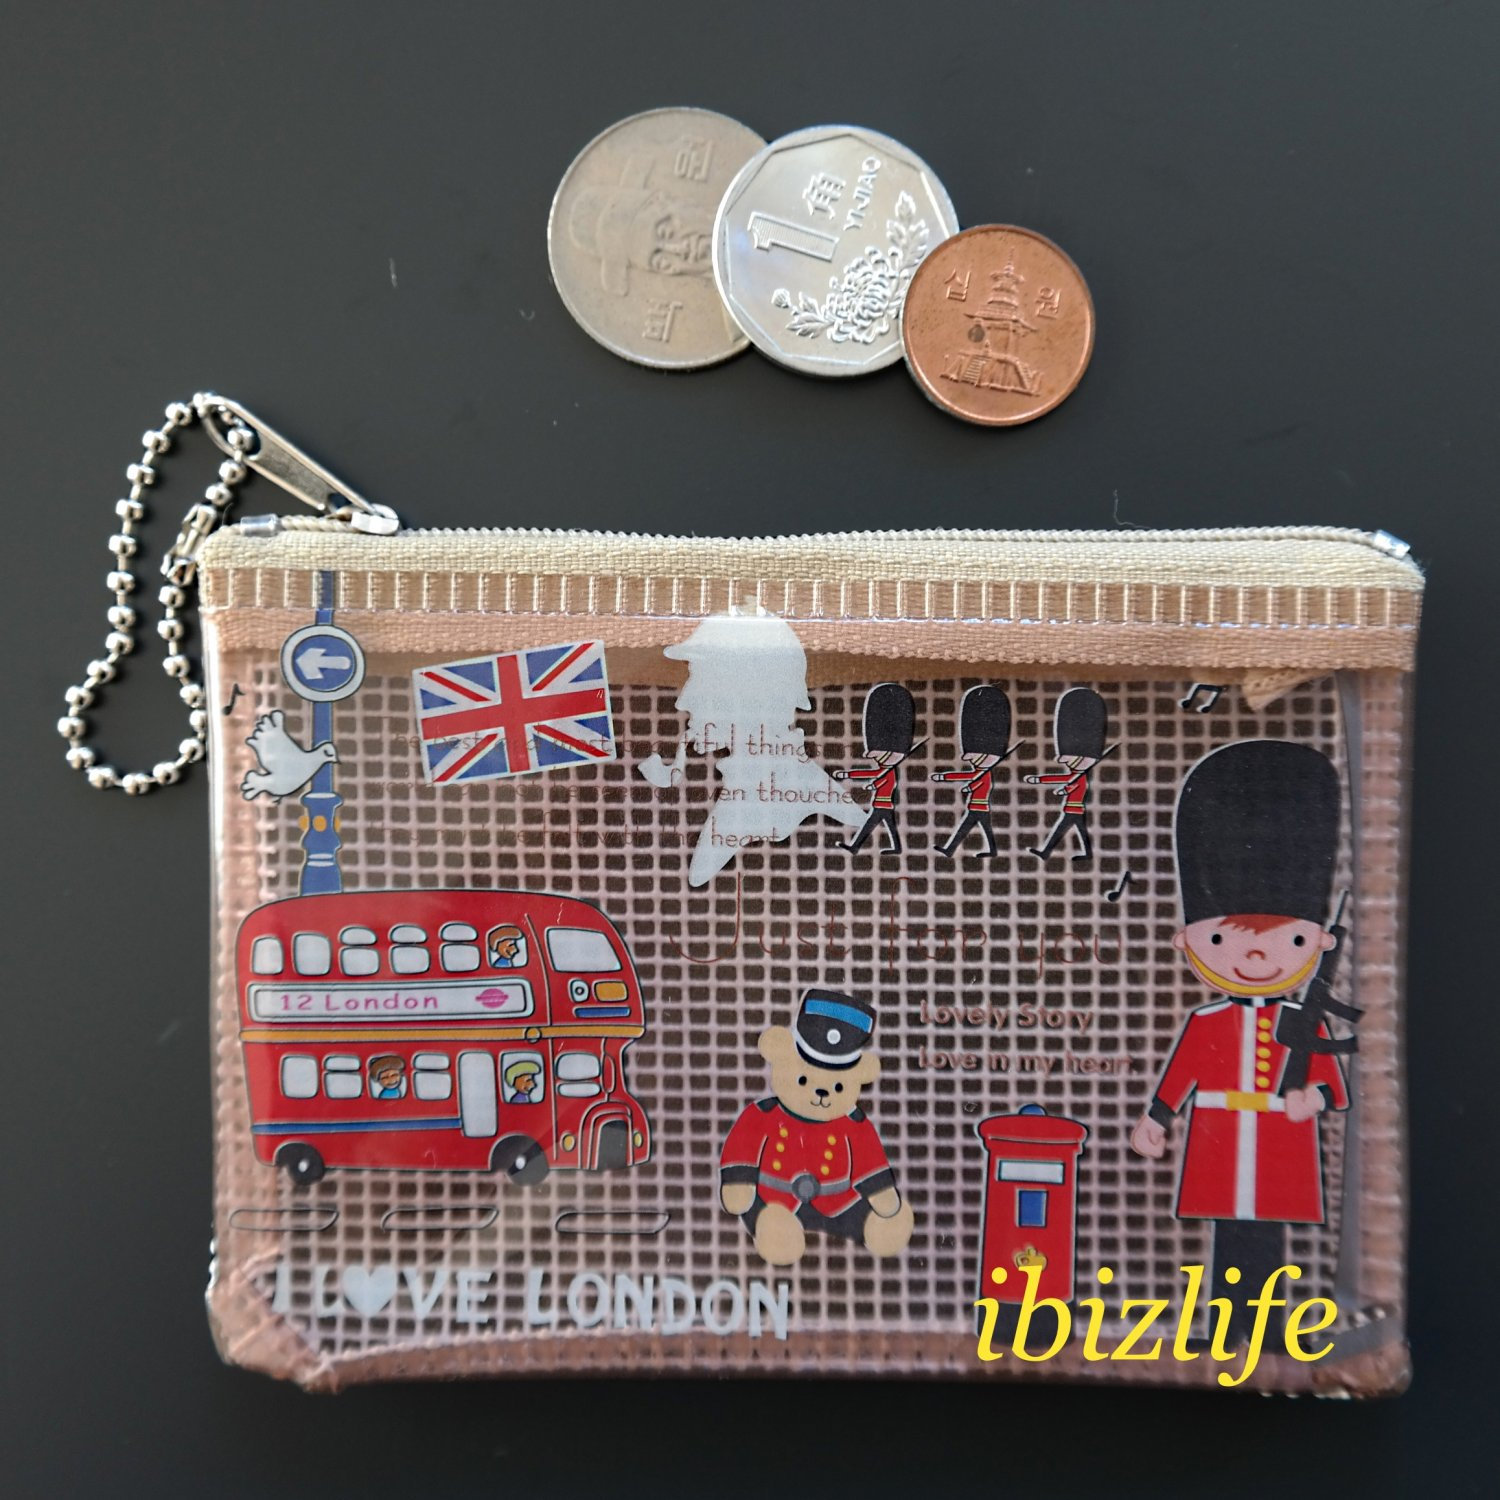 Fashion pocket for coins or cards with Love London Printing (FP06)